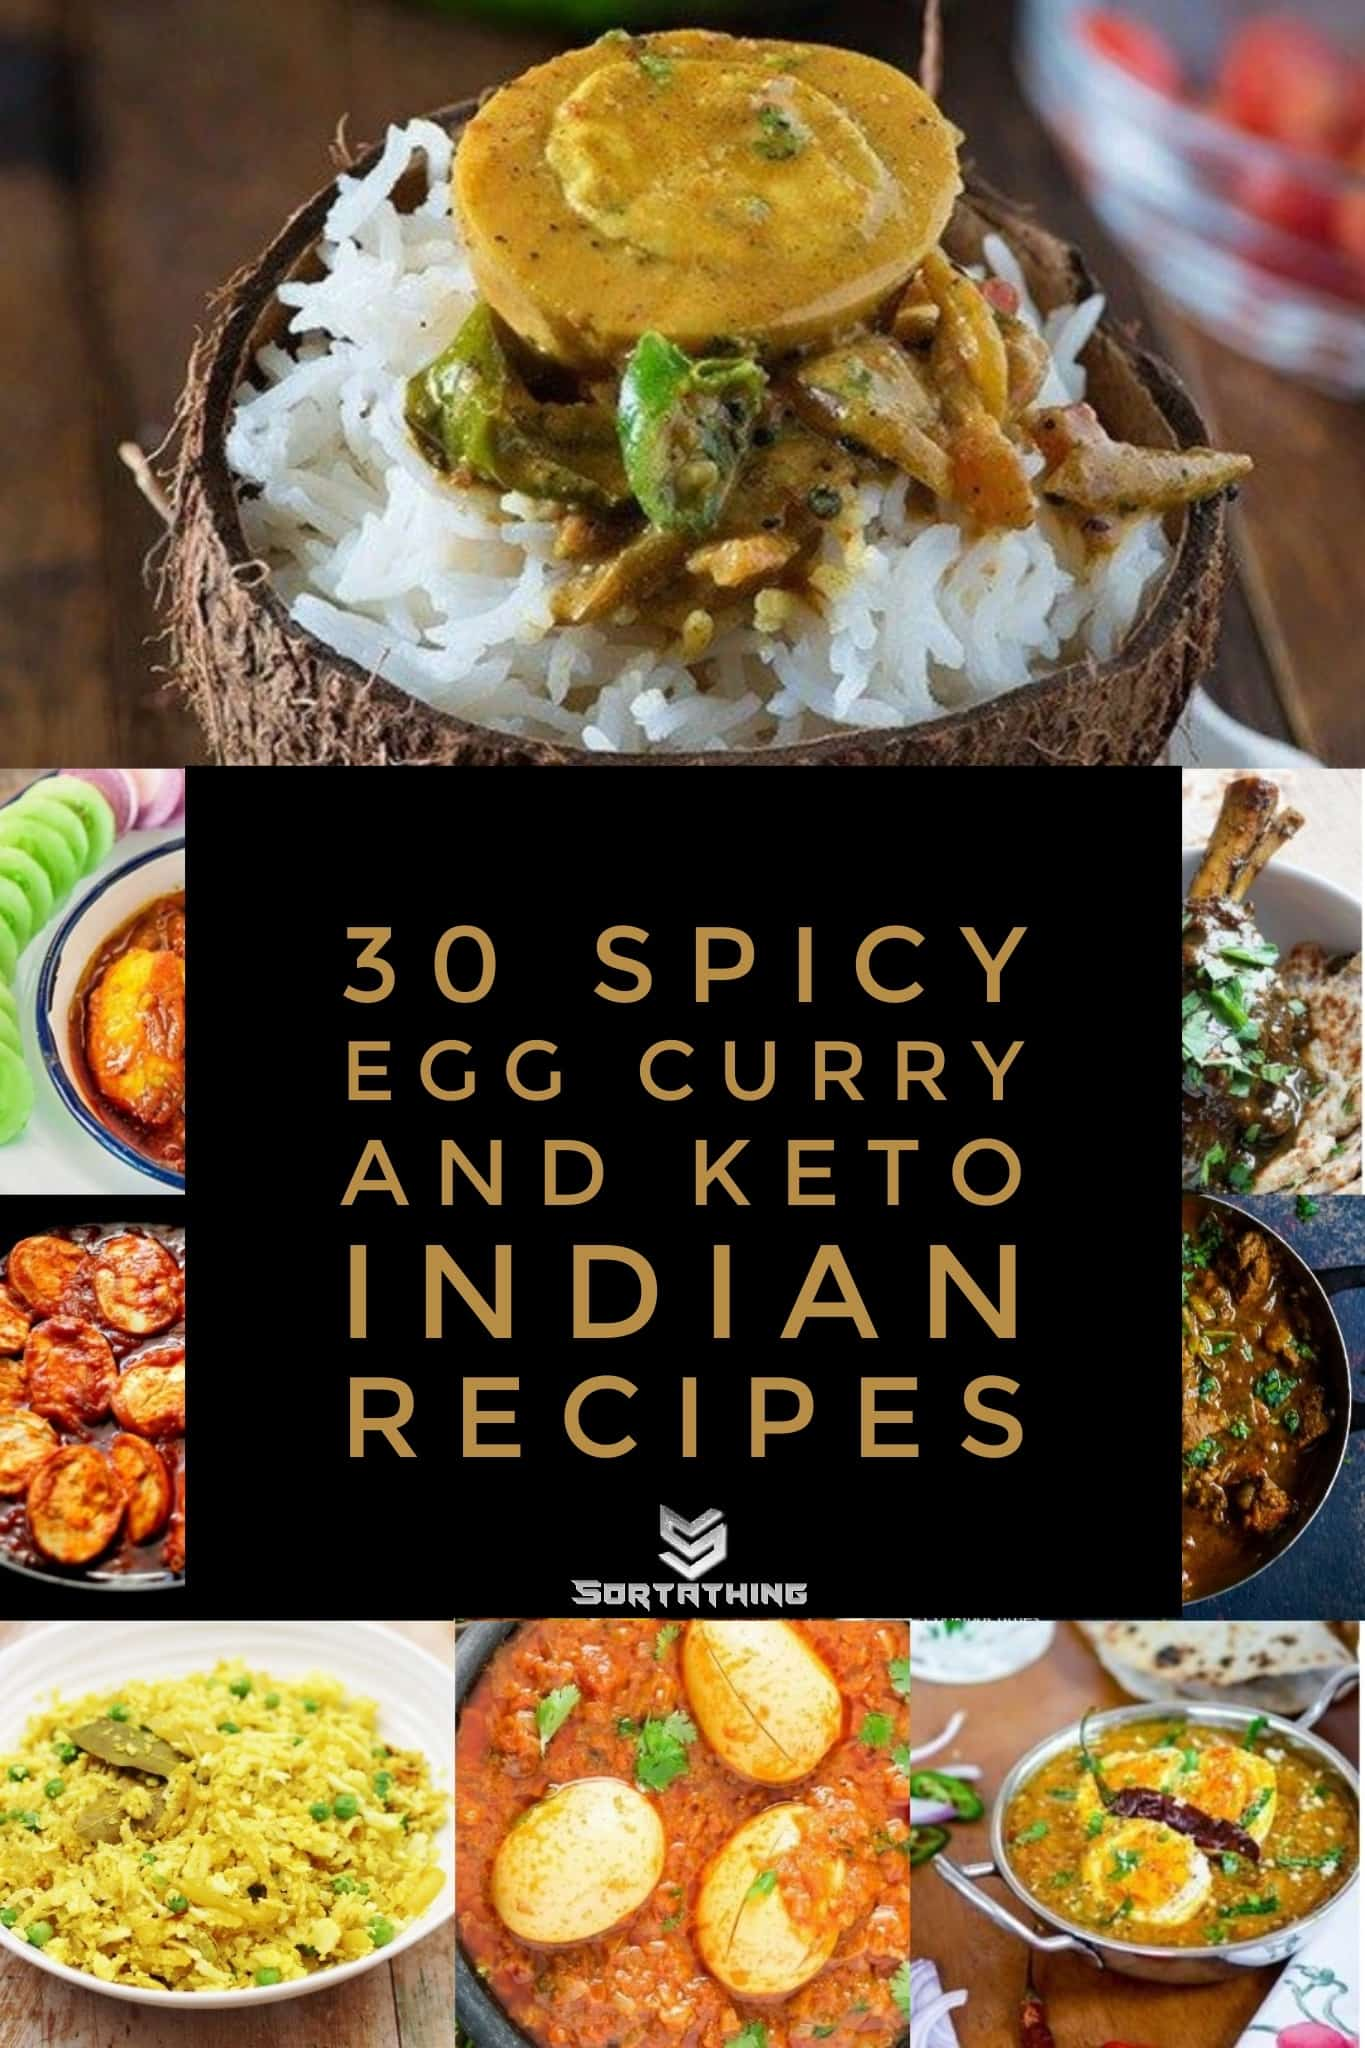 30 spicy egg curry & keto Indian recipes